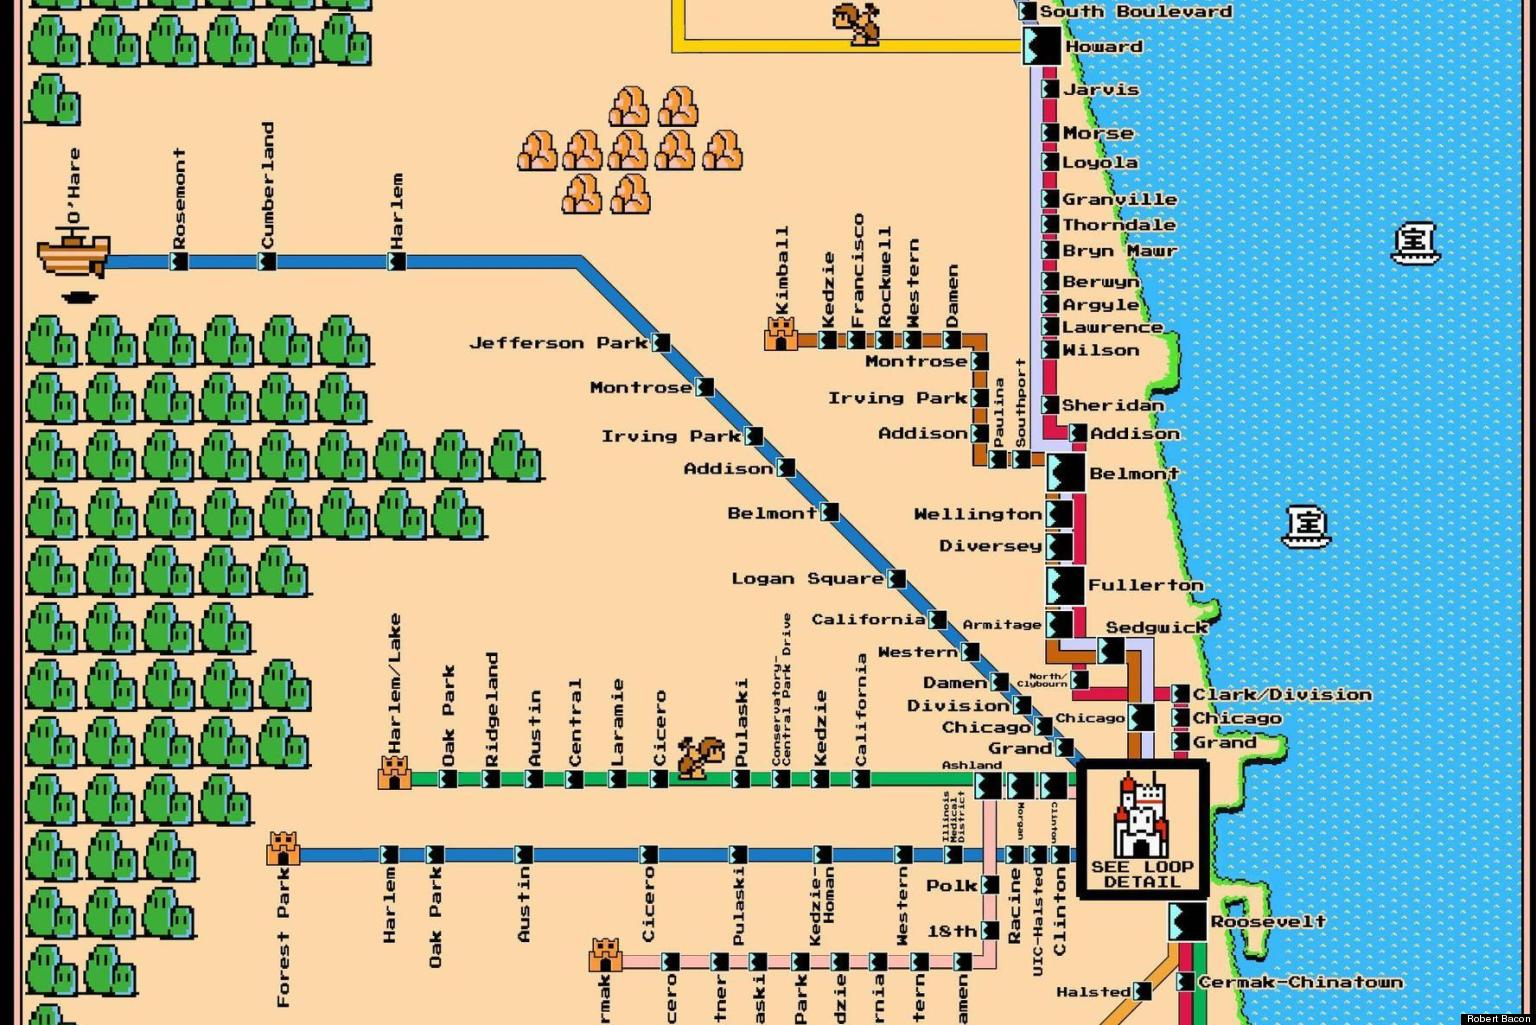 Chicago Subway Map Downtown.Famous Subway Maps Reimagined As Vintage Super Mario Brothers Games